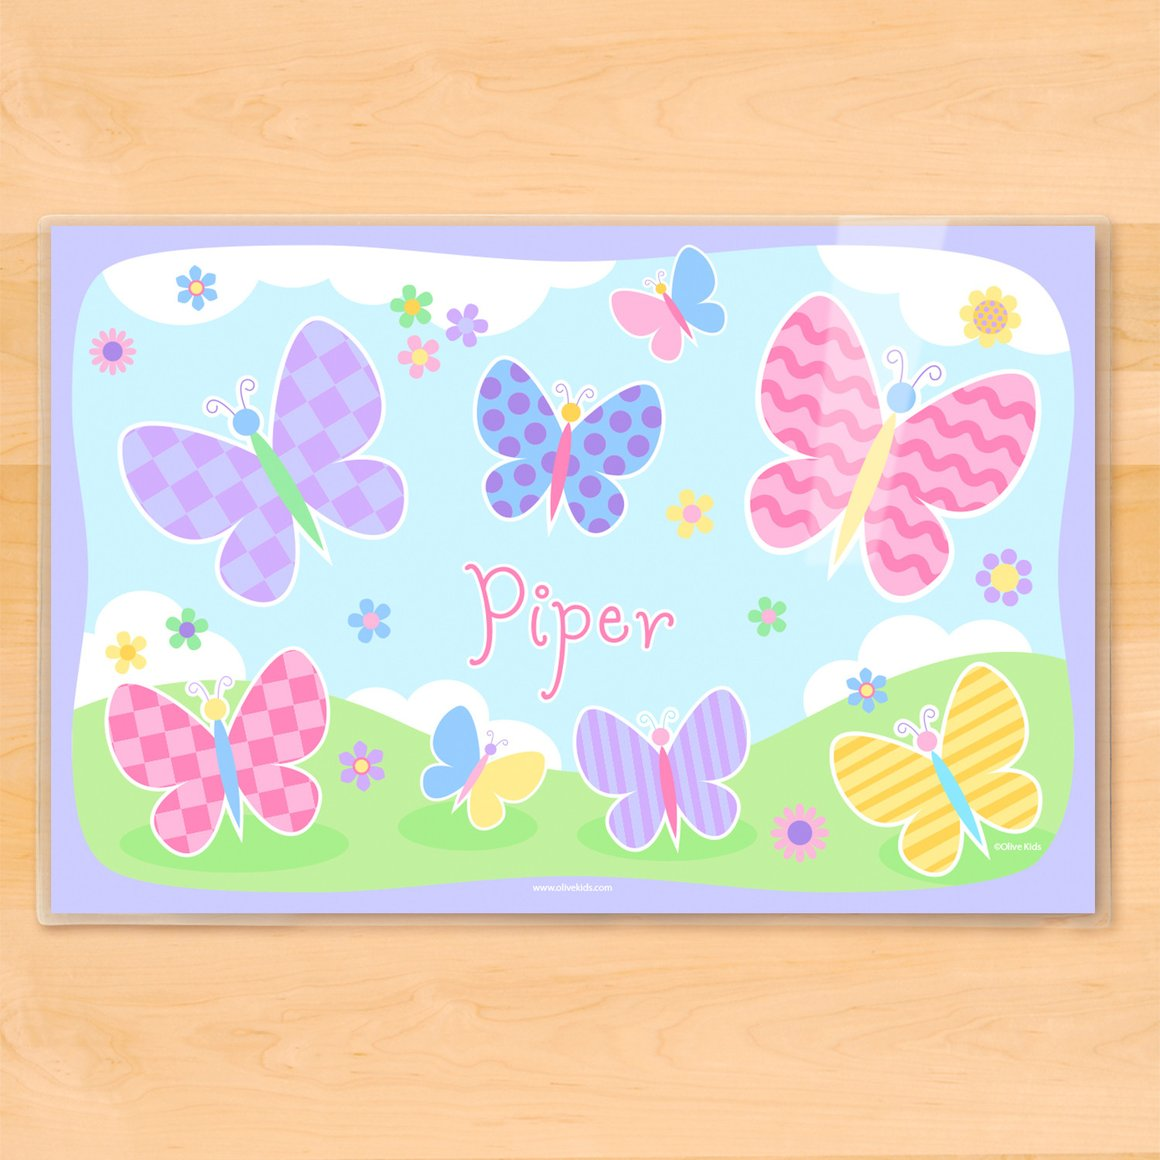 Butterfly Garden Personalized Kids Placemat